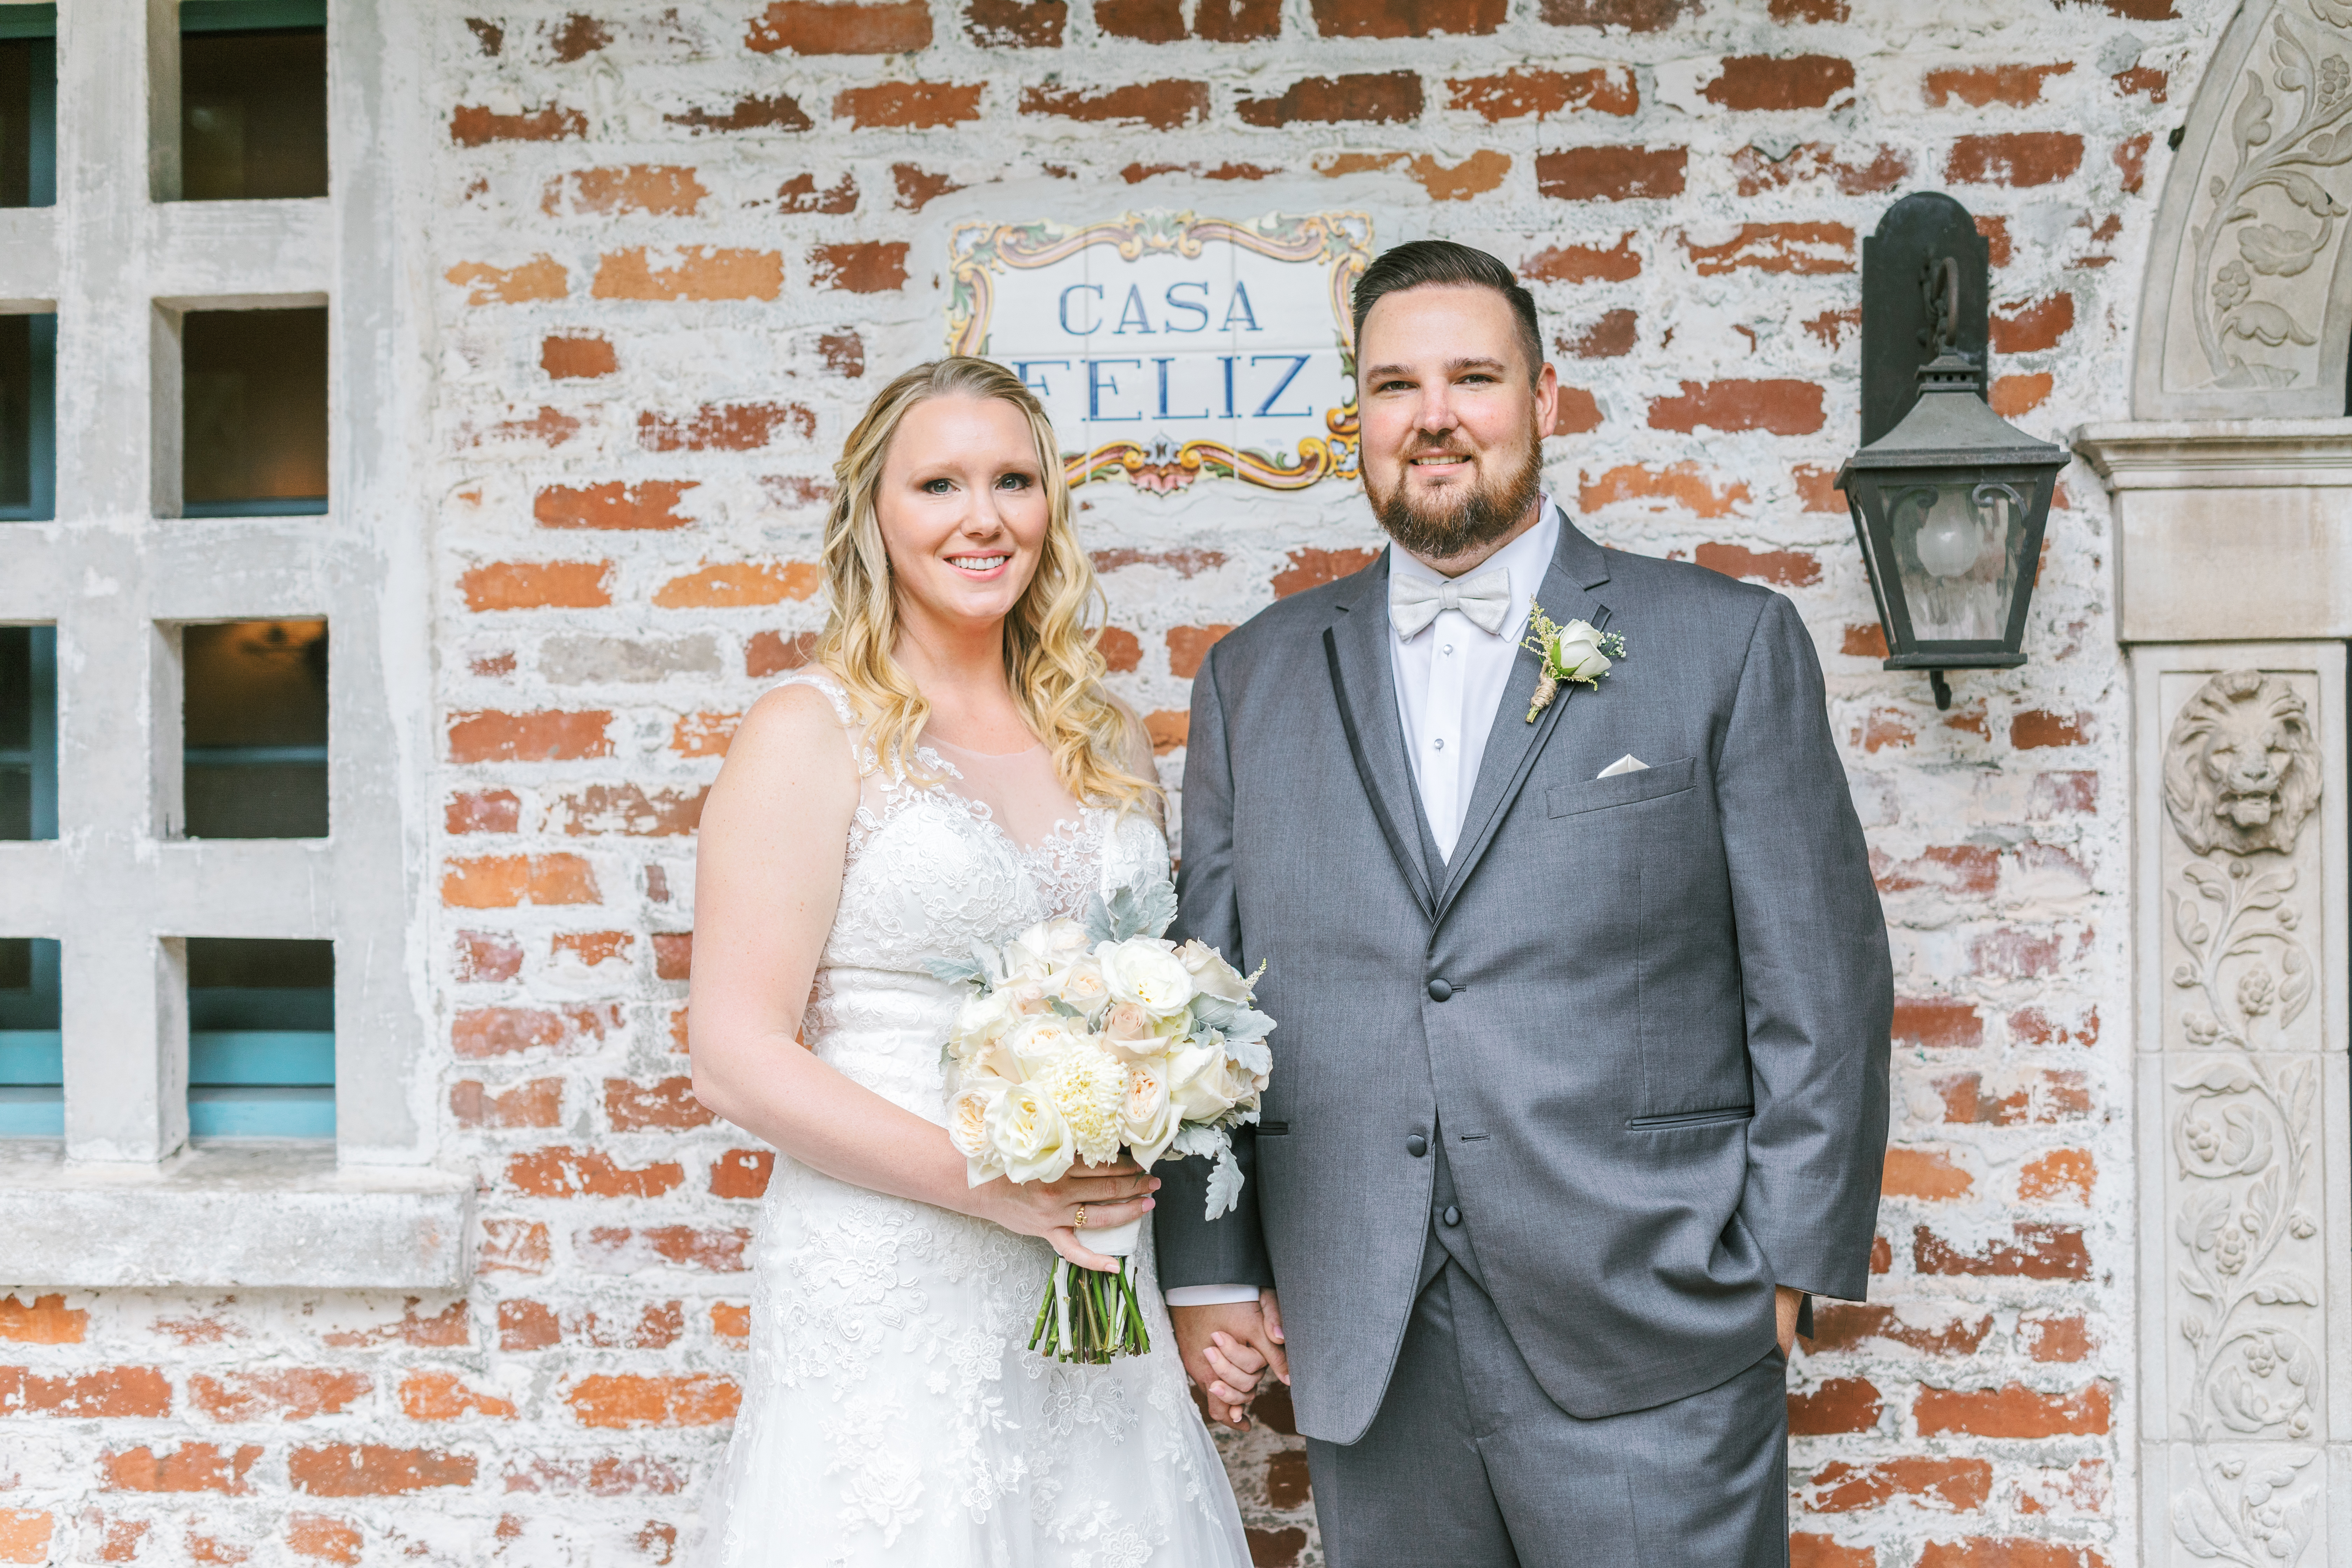 catherineannphotography-wedding-11218-me